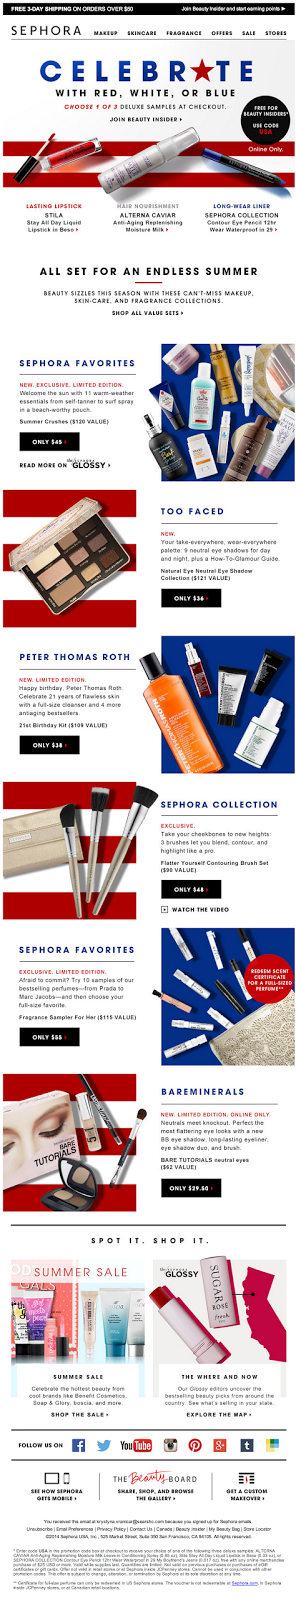 Sephora - Red, white, or blue? Pick one..png